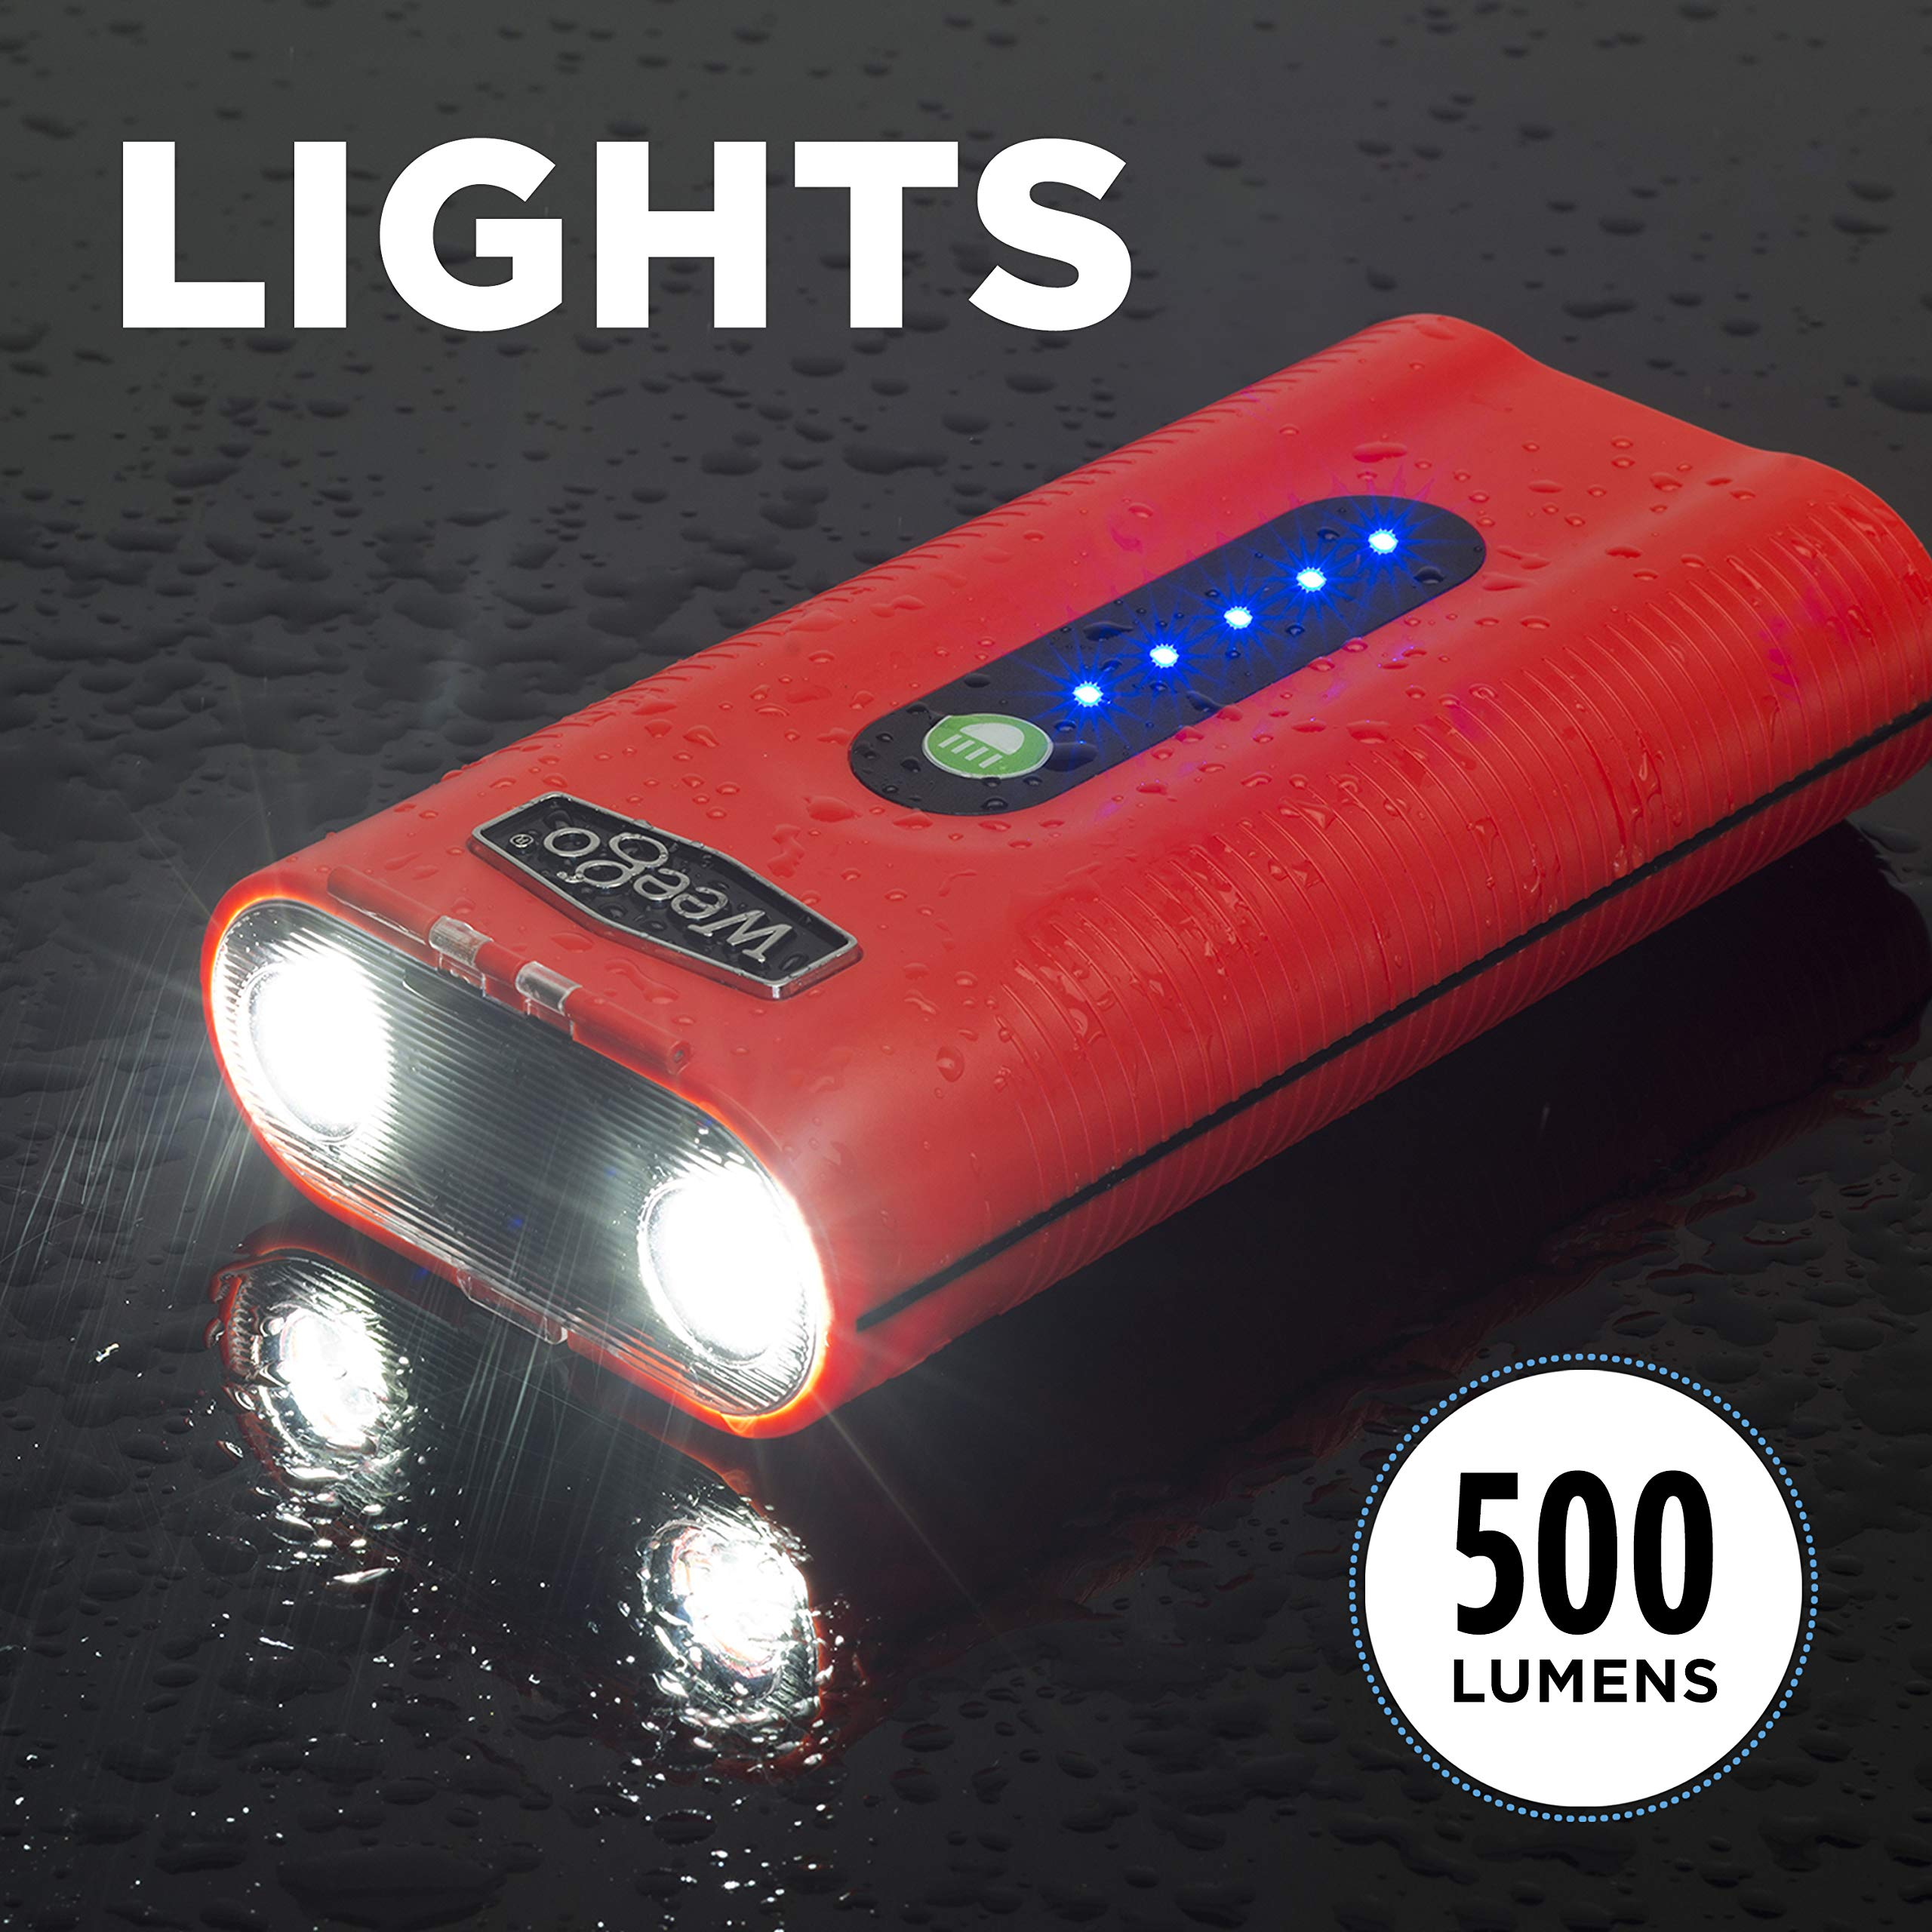 WEEGO 66.1 Jump Starting Power Pack (NEW 2019 Model) 2500 Peak 600 Cranking Amps High Performance Lithium Ion Jump Starter Quick Charges Phones 600 Lumen LED Flashlight Water Resistant by Weego (Image #5)